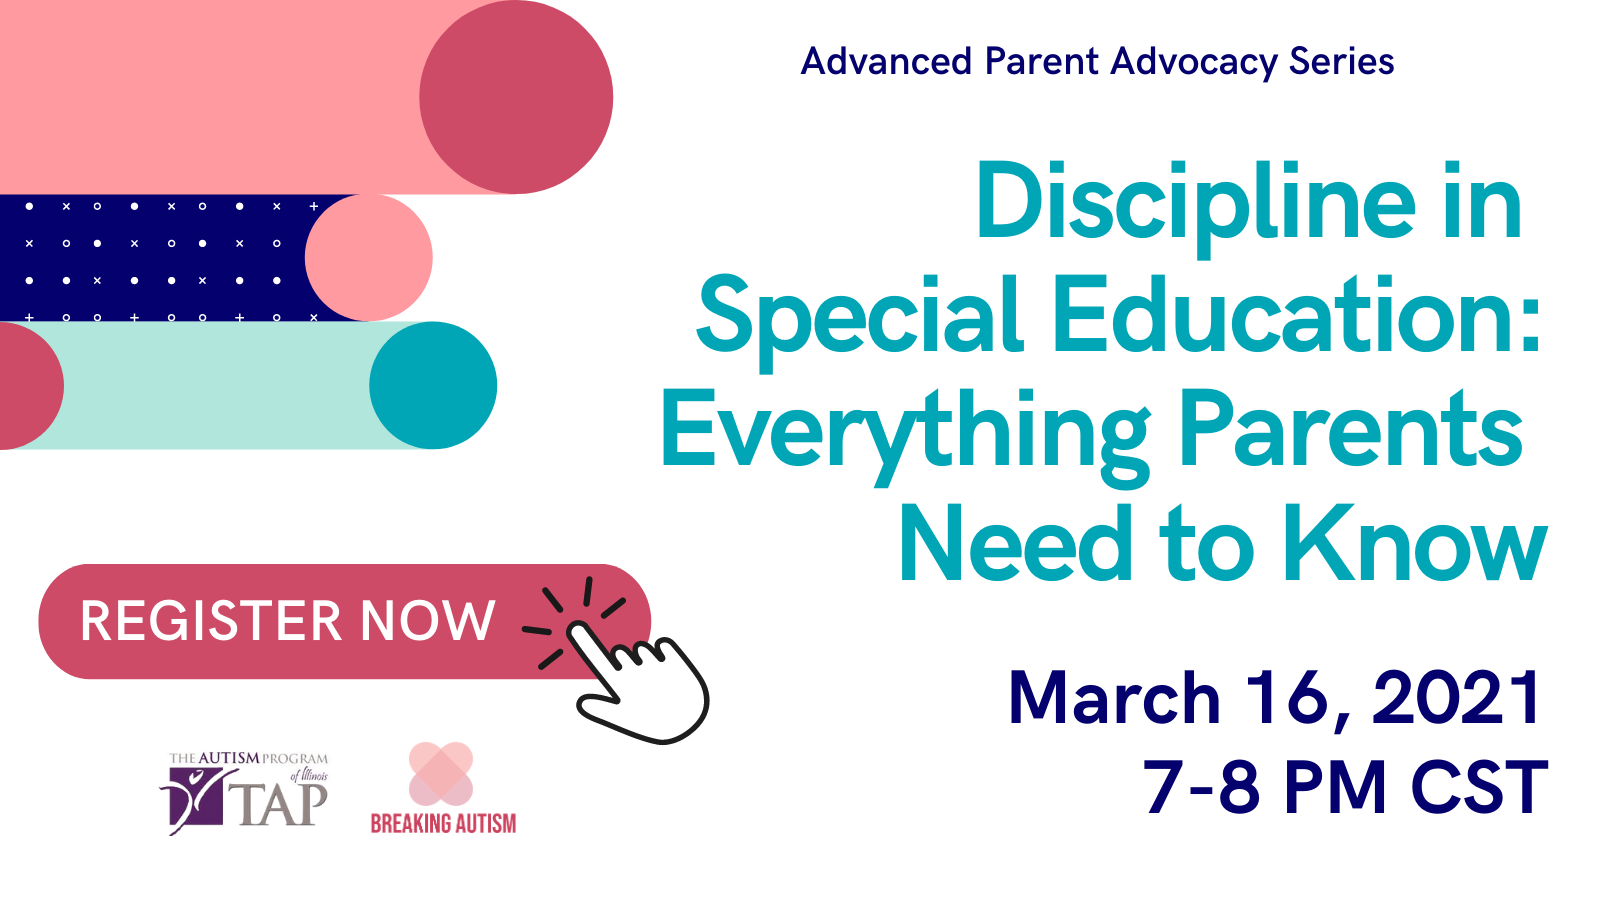 Discipline in Special Education: Everything Parents Need to Know